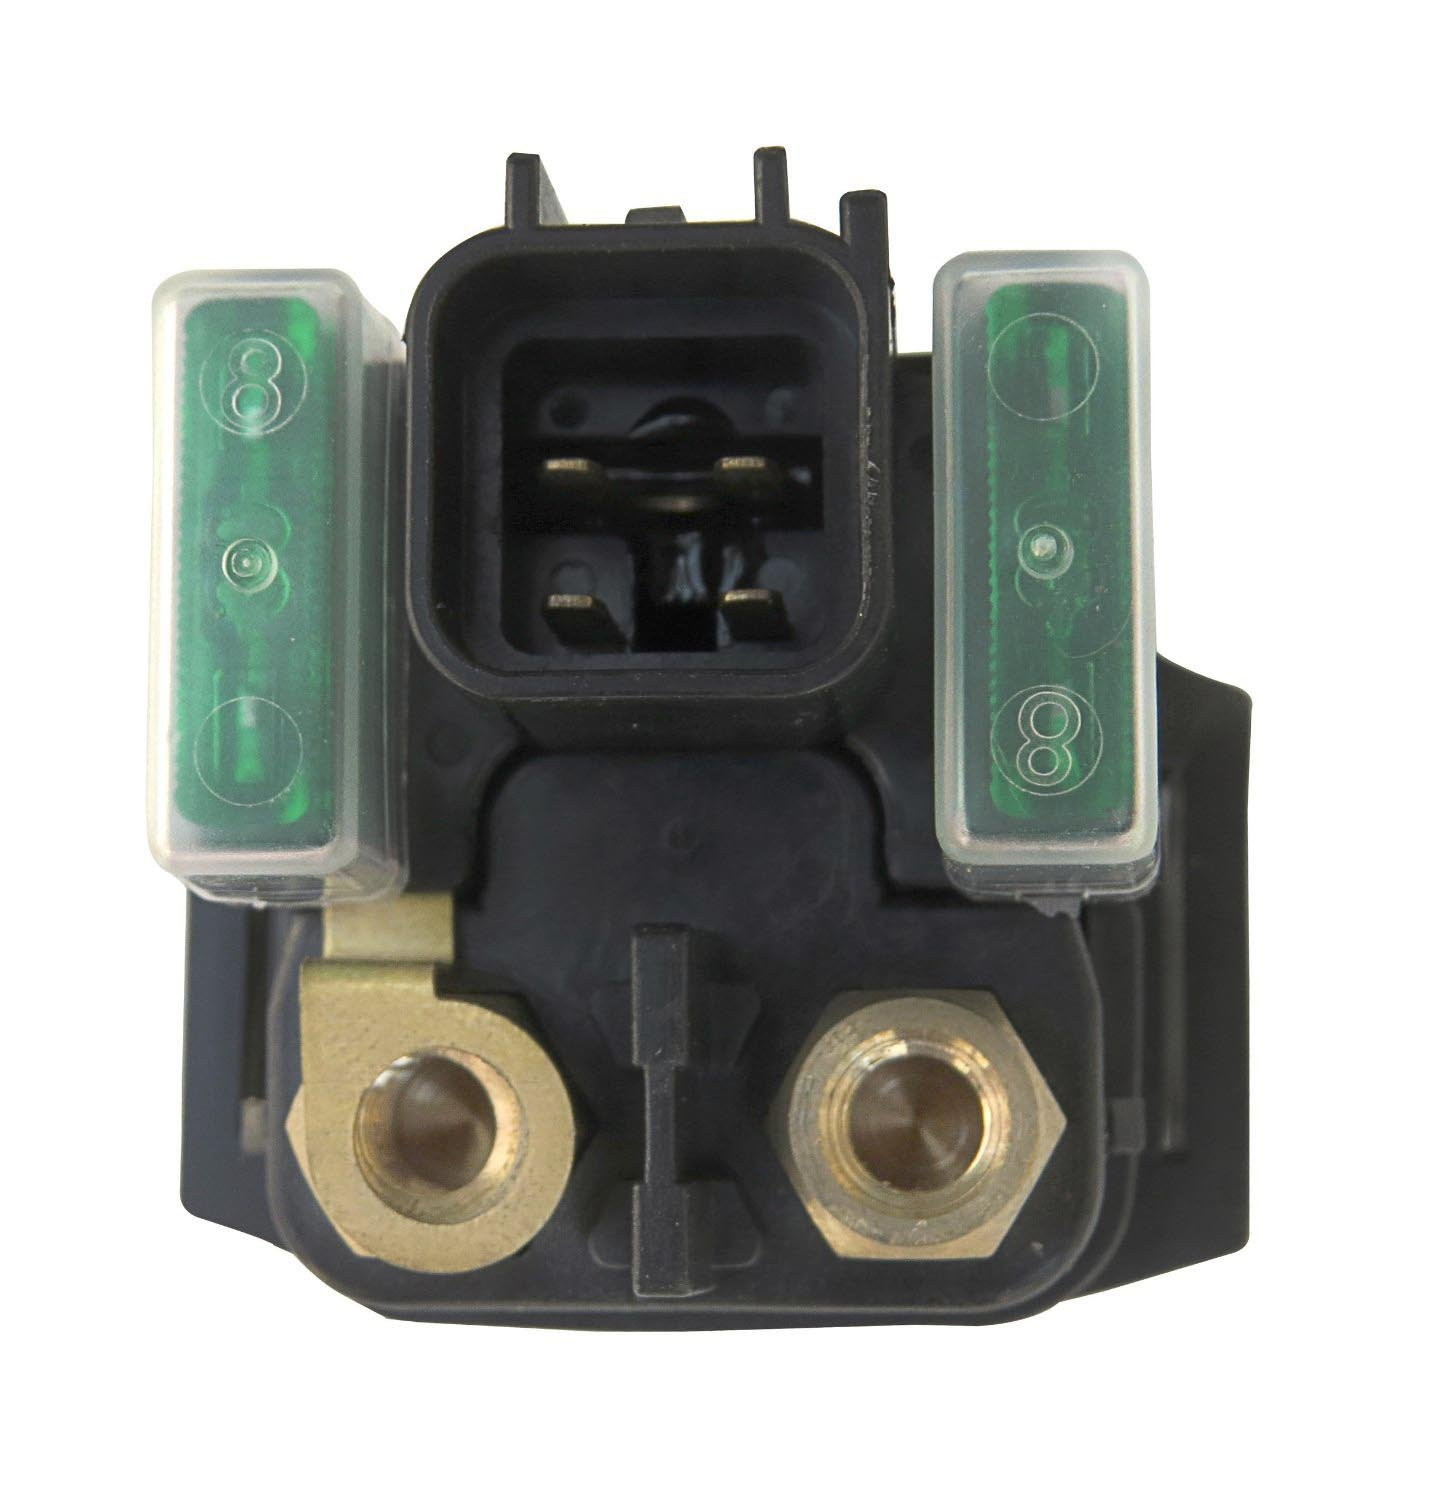 Amazon.com: Starter Solenoid Relay Suzuki 1500 VL1500 VL1500T VL 1500 T  Intruder 1998 1999 2000 2001 2002 2003 2004 2005 2006 2007 2008 2009:  Automotive